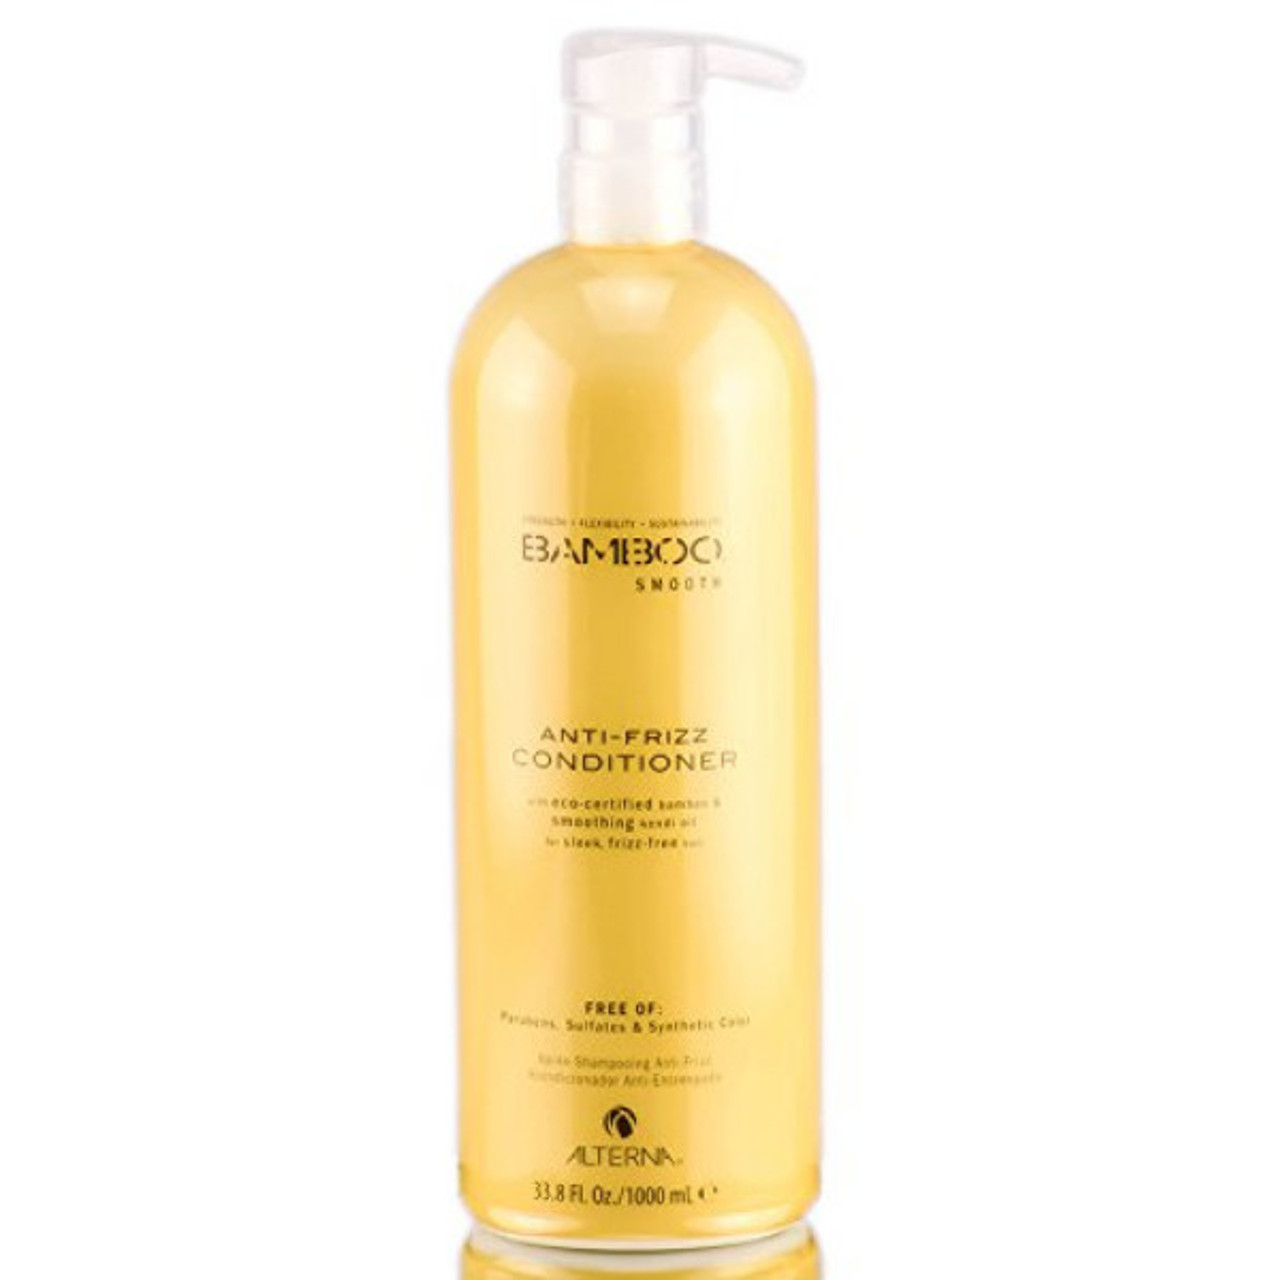 Alterna Bamboo Anti-frizz Conditioner 1L